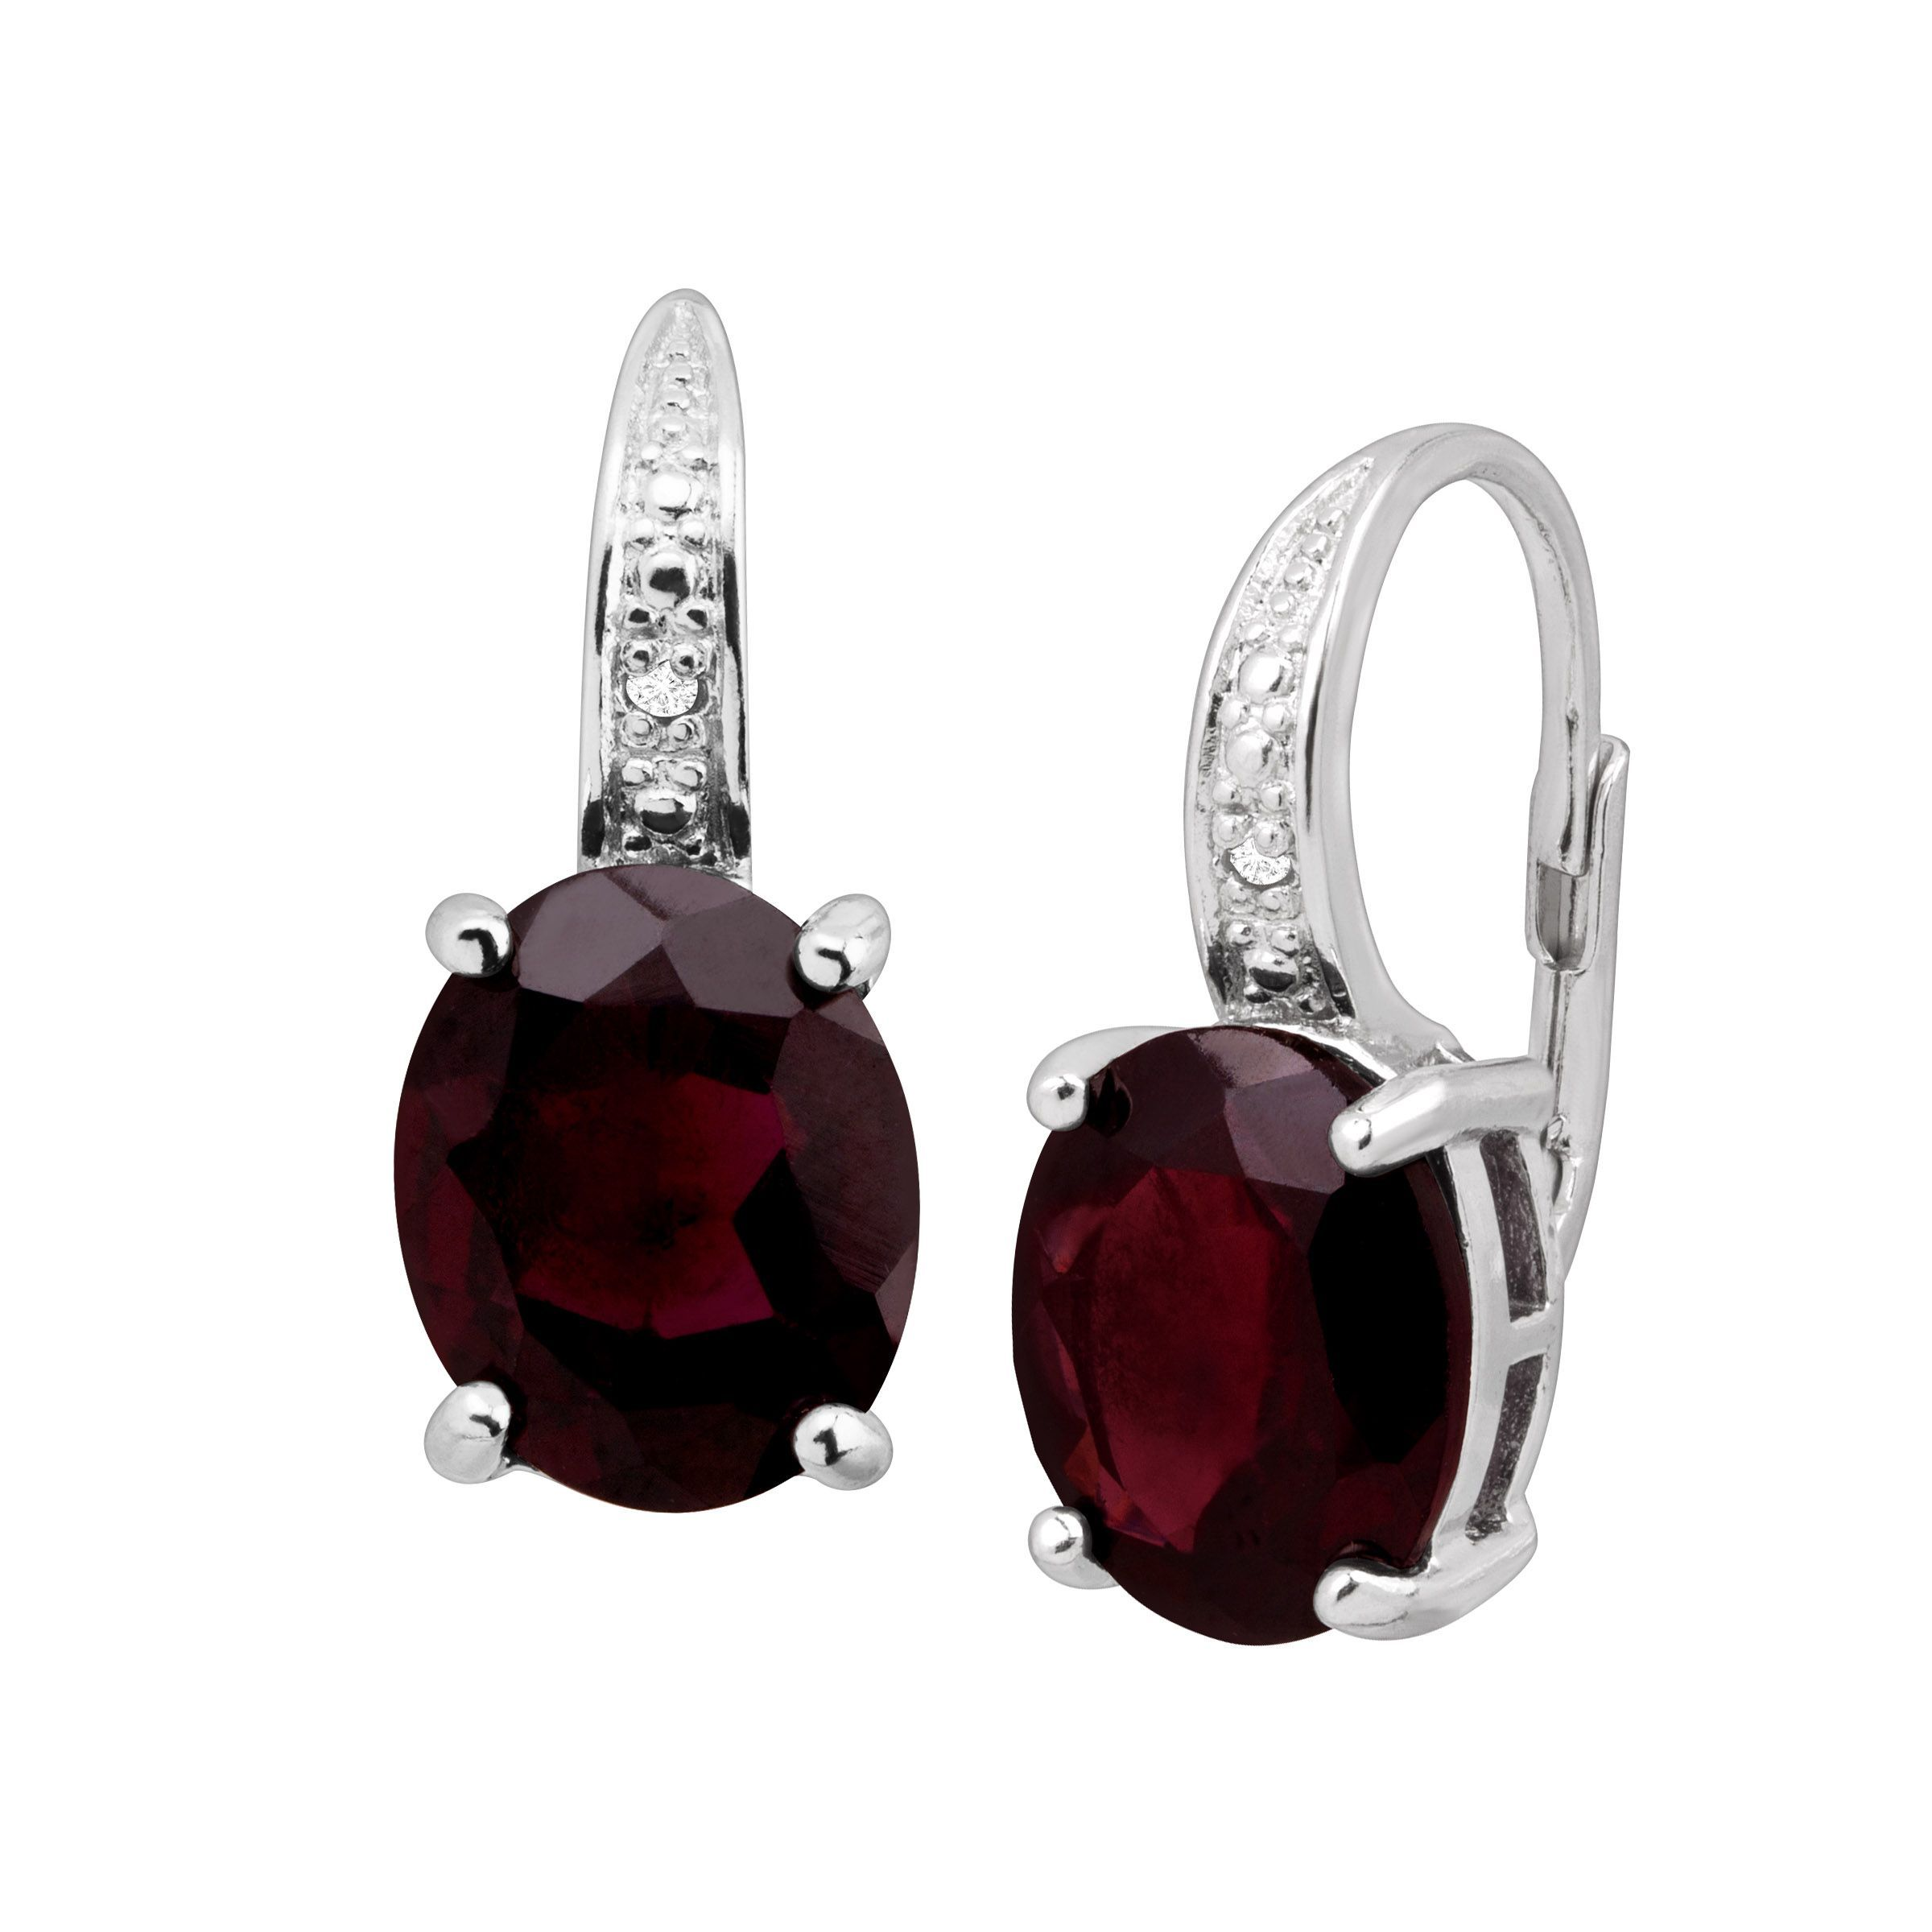 6 Ct Natural Garnet Earrings With Diamonds In Sterling Silver